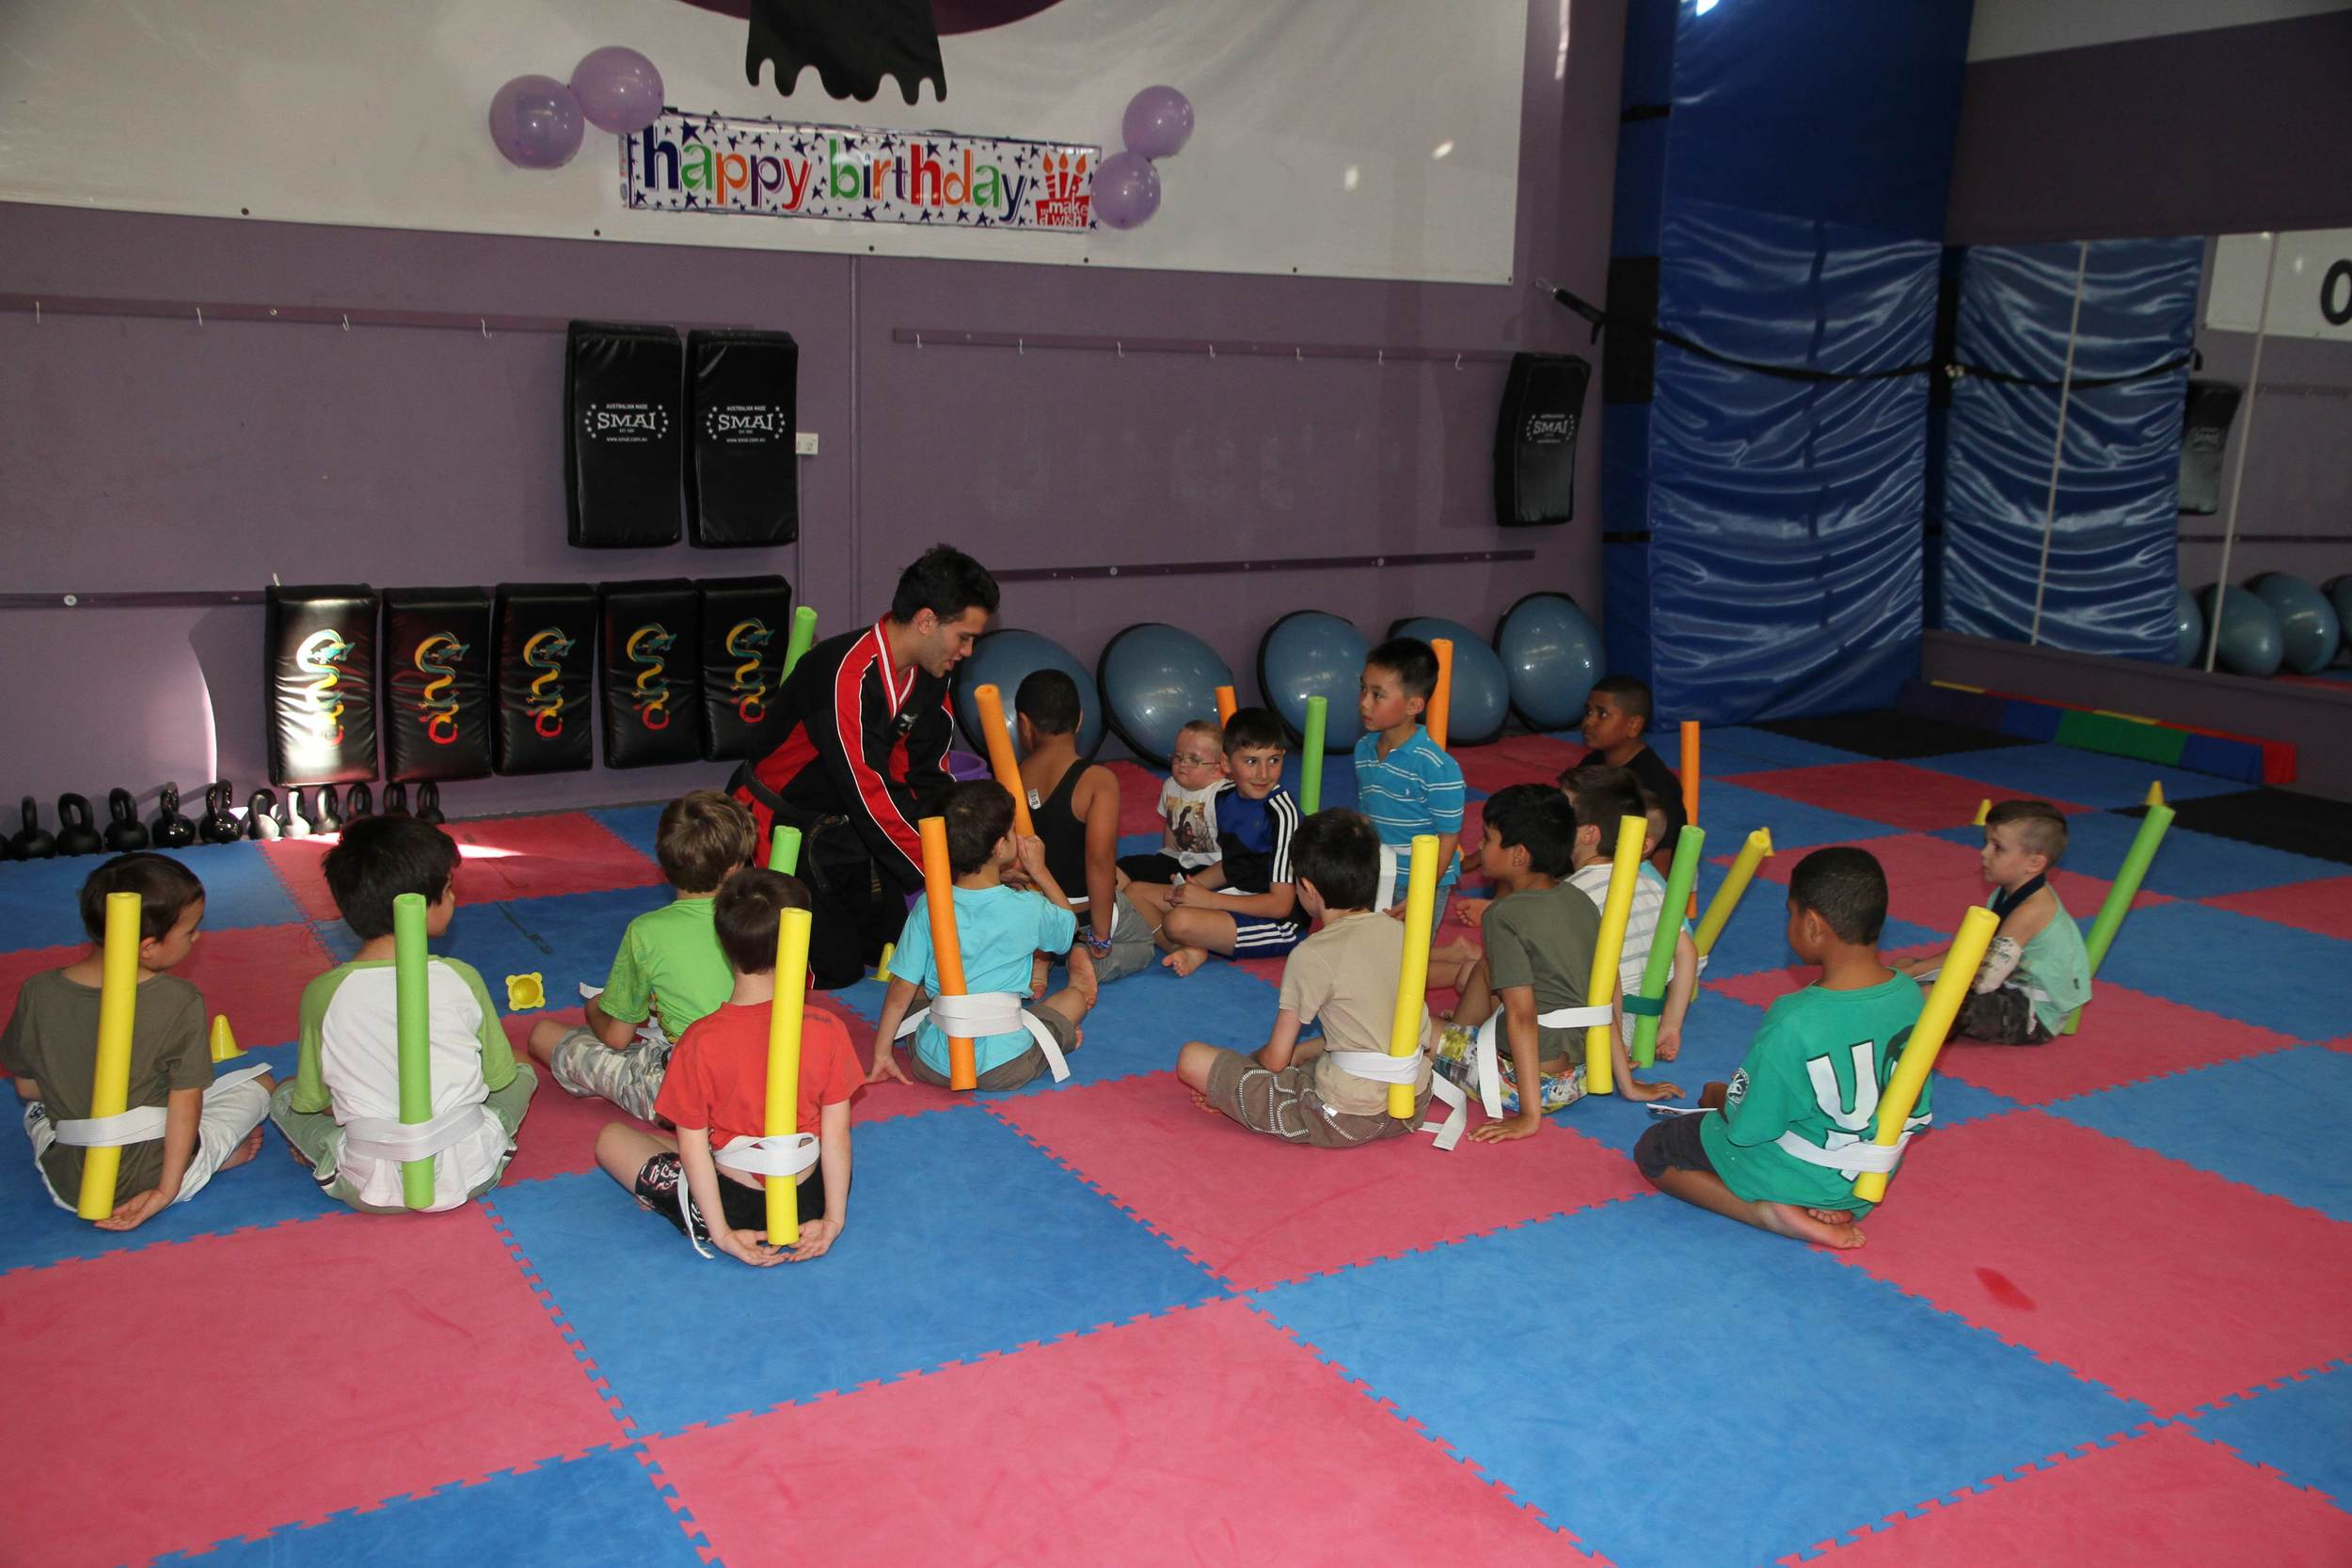 Games and fun activities are part of every party